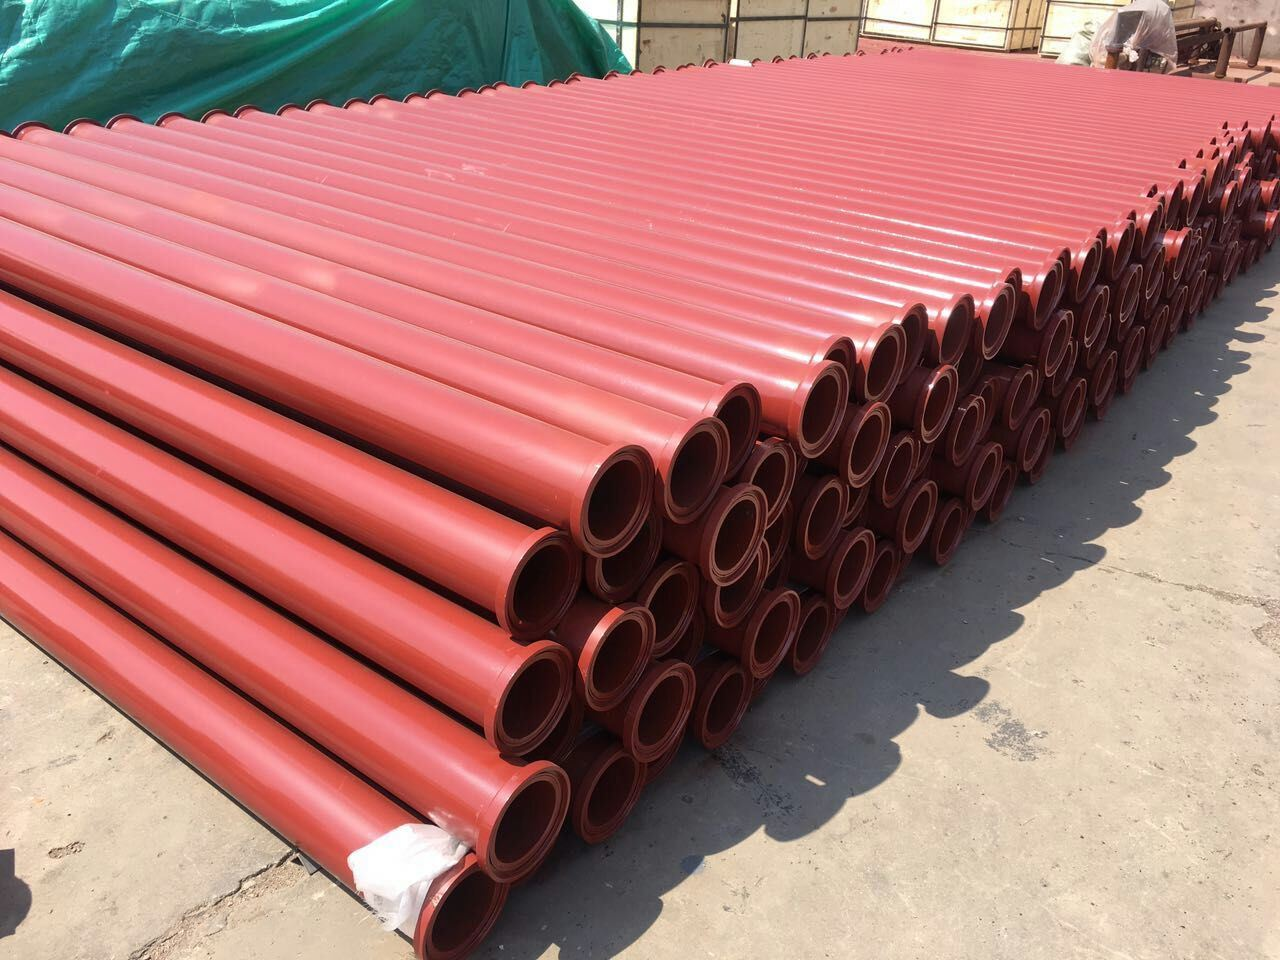 Concrete Pump Straight Pipe, Seamless Steel Wear Resistant Pipe